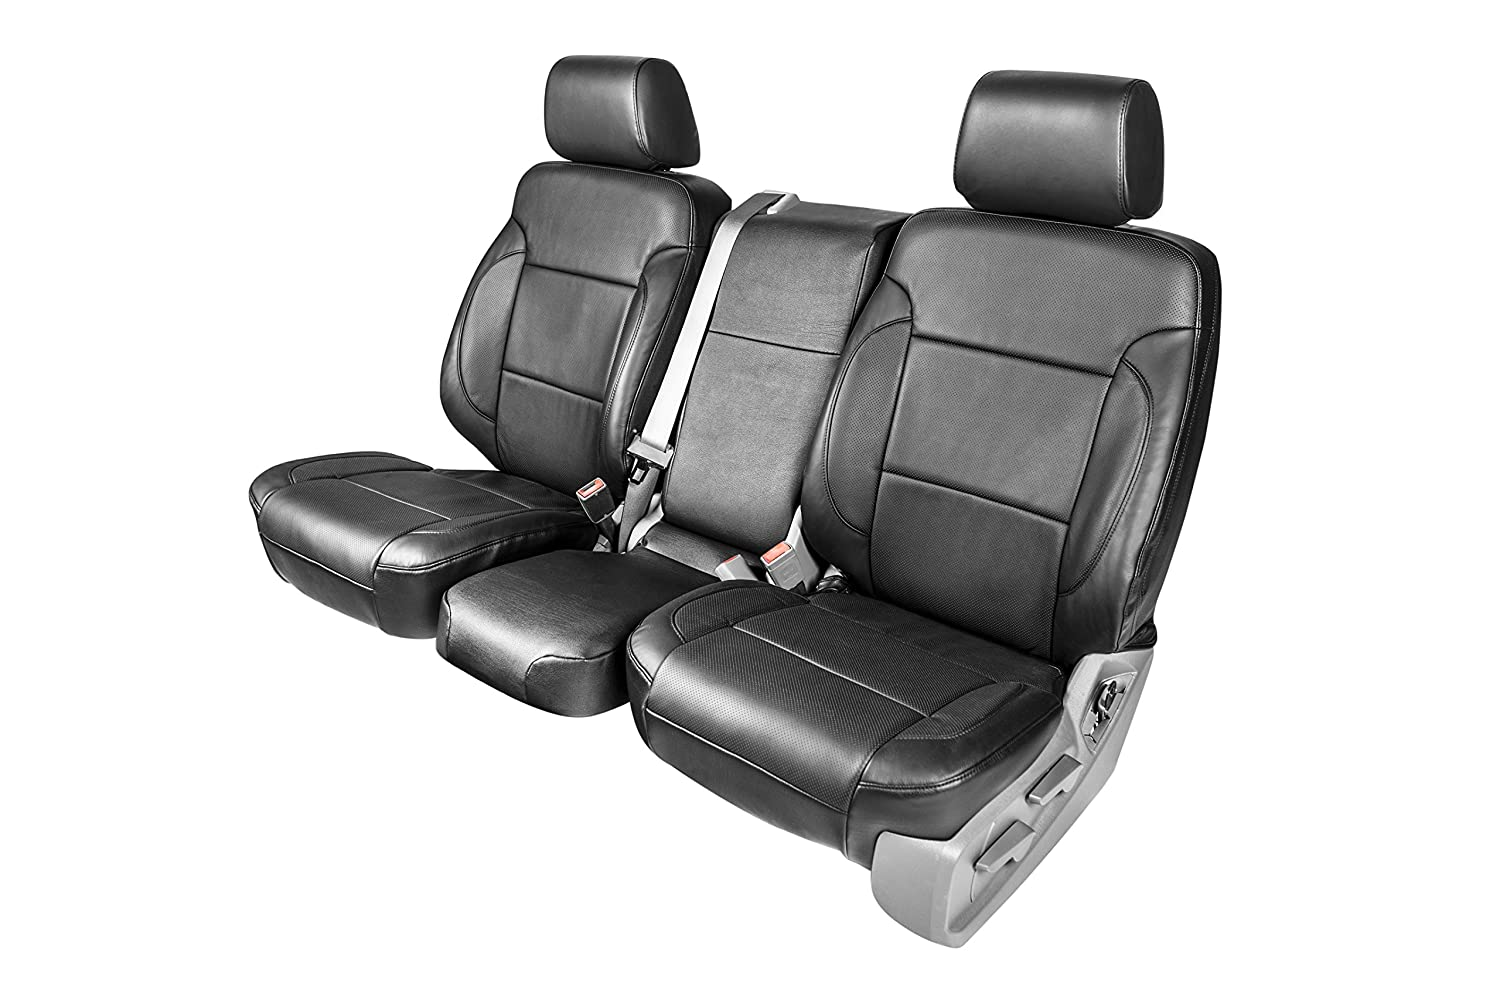 Clazzio 758011blk Black Leather Front Row Seat Cover for Chevrolet Impala